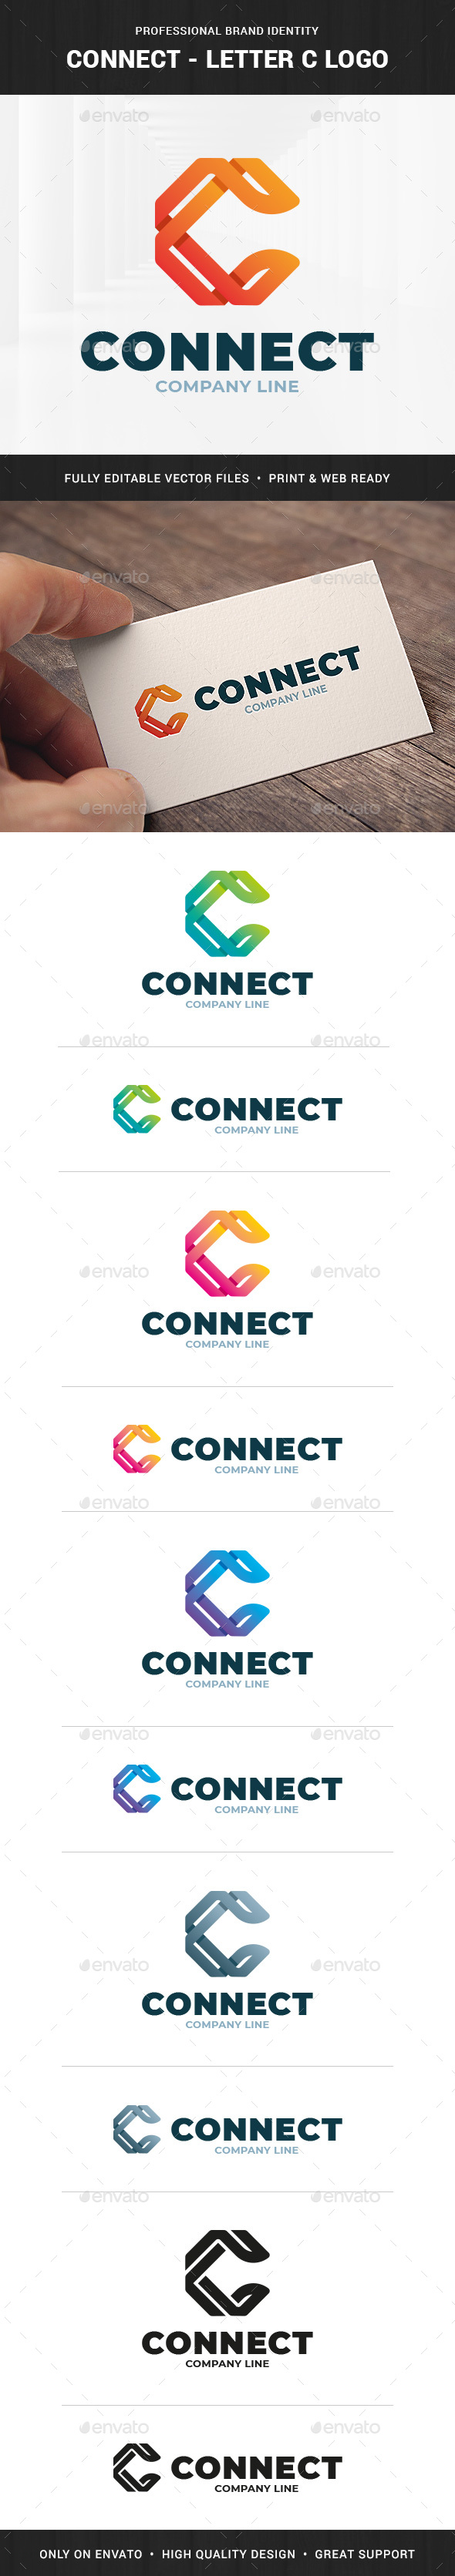 Connect - Letter C Logo Template